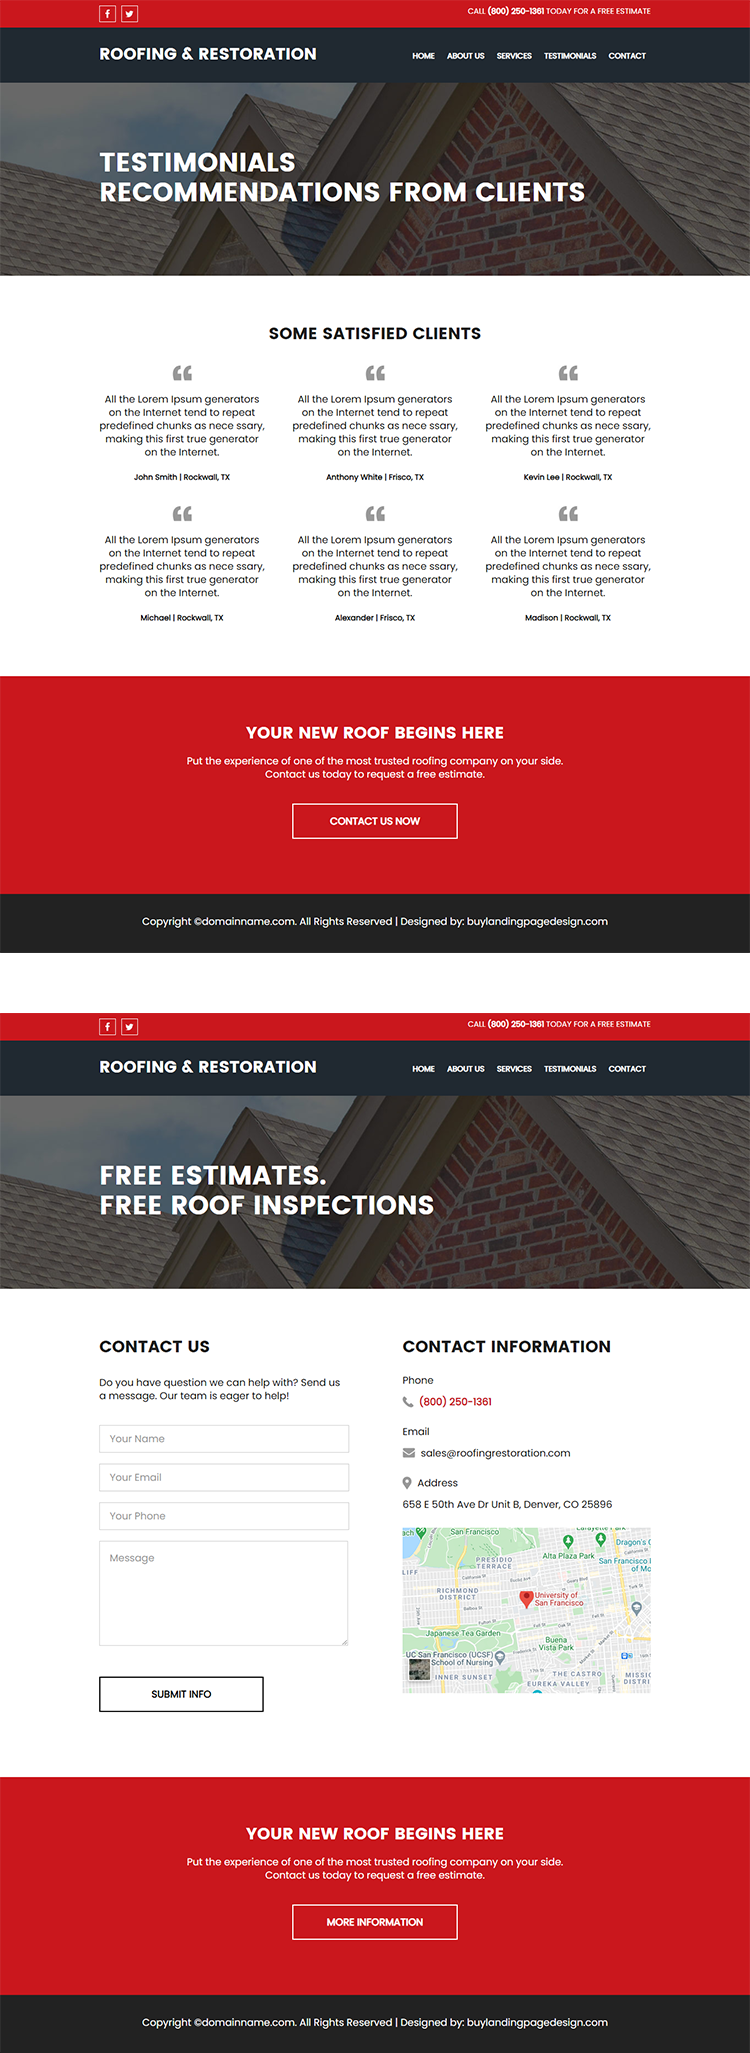 residential and commercial roofing services responsive website design